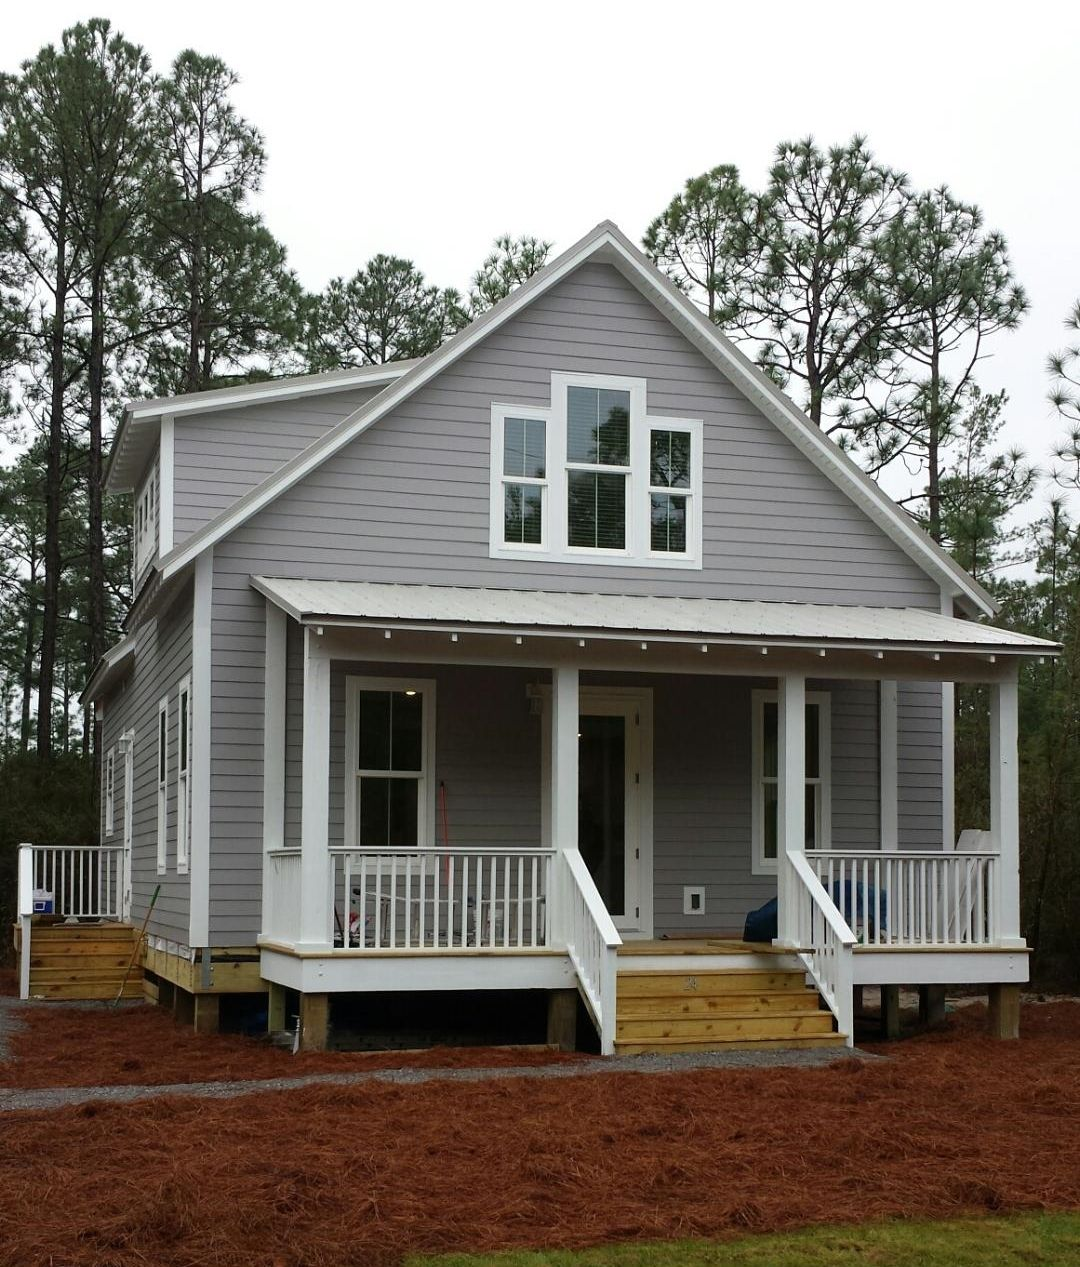 Greenbriar modular home santa rosa beach florida custom for Custom built house